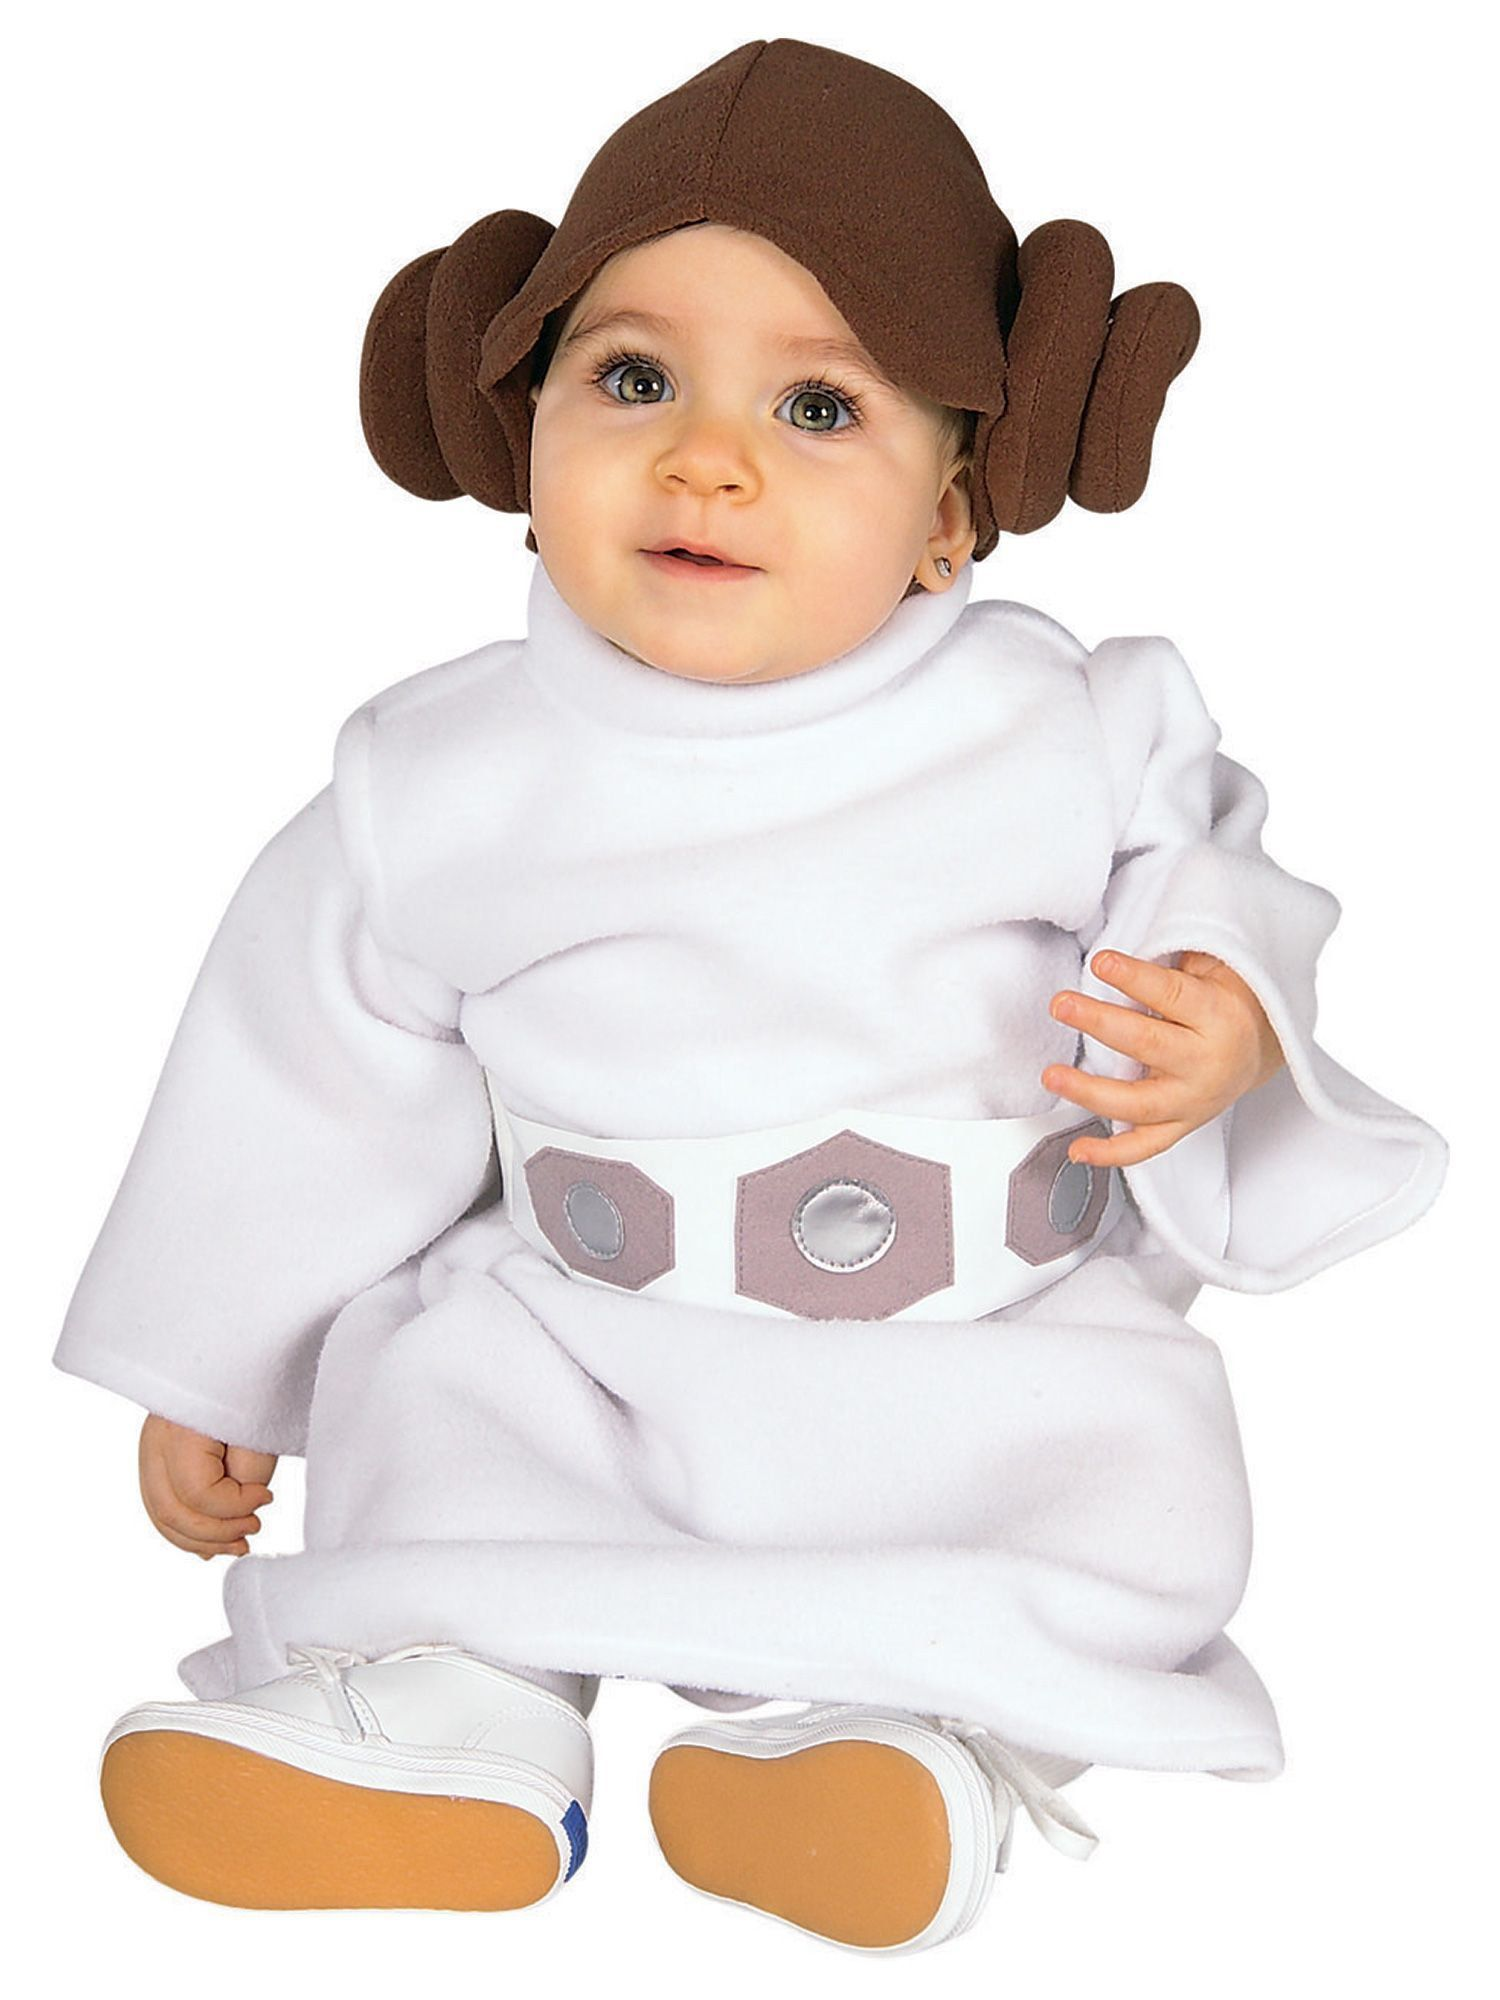 Baby & Toddler Star Wars Costumes | Wholesale Halloween Costumes